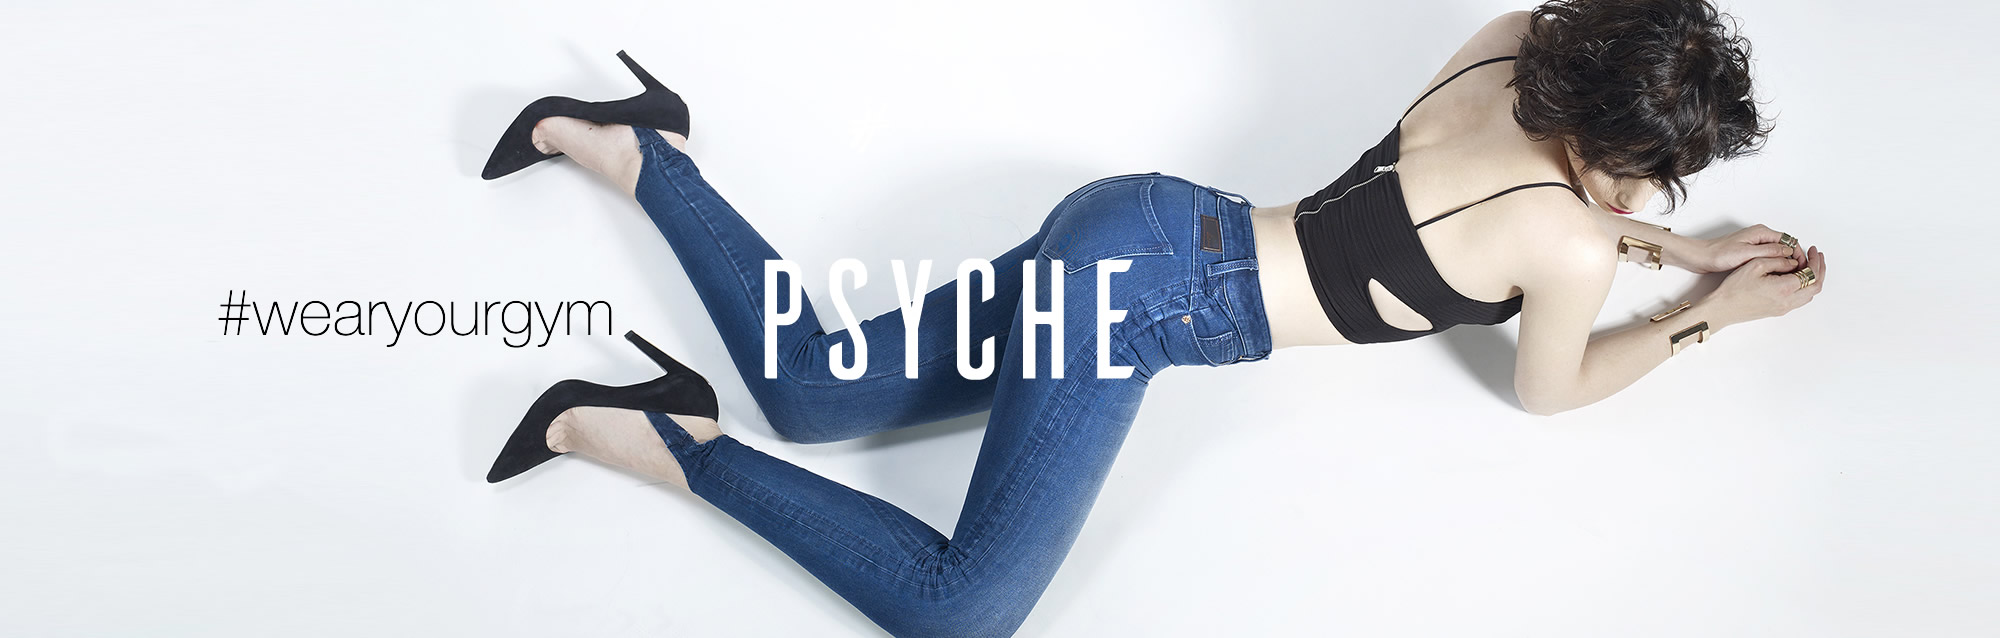 psyche-jeans-latino_slide